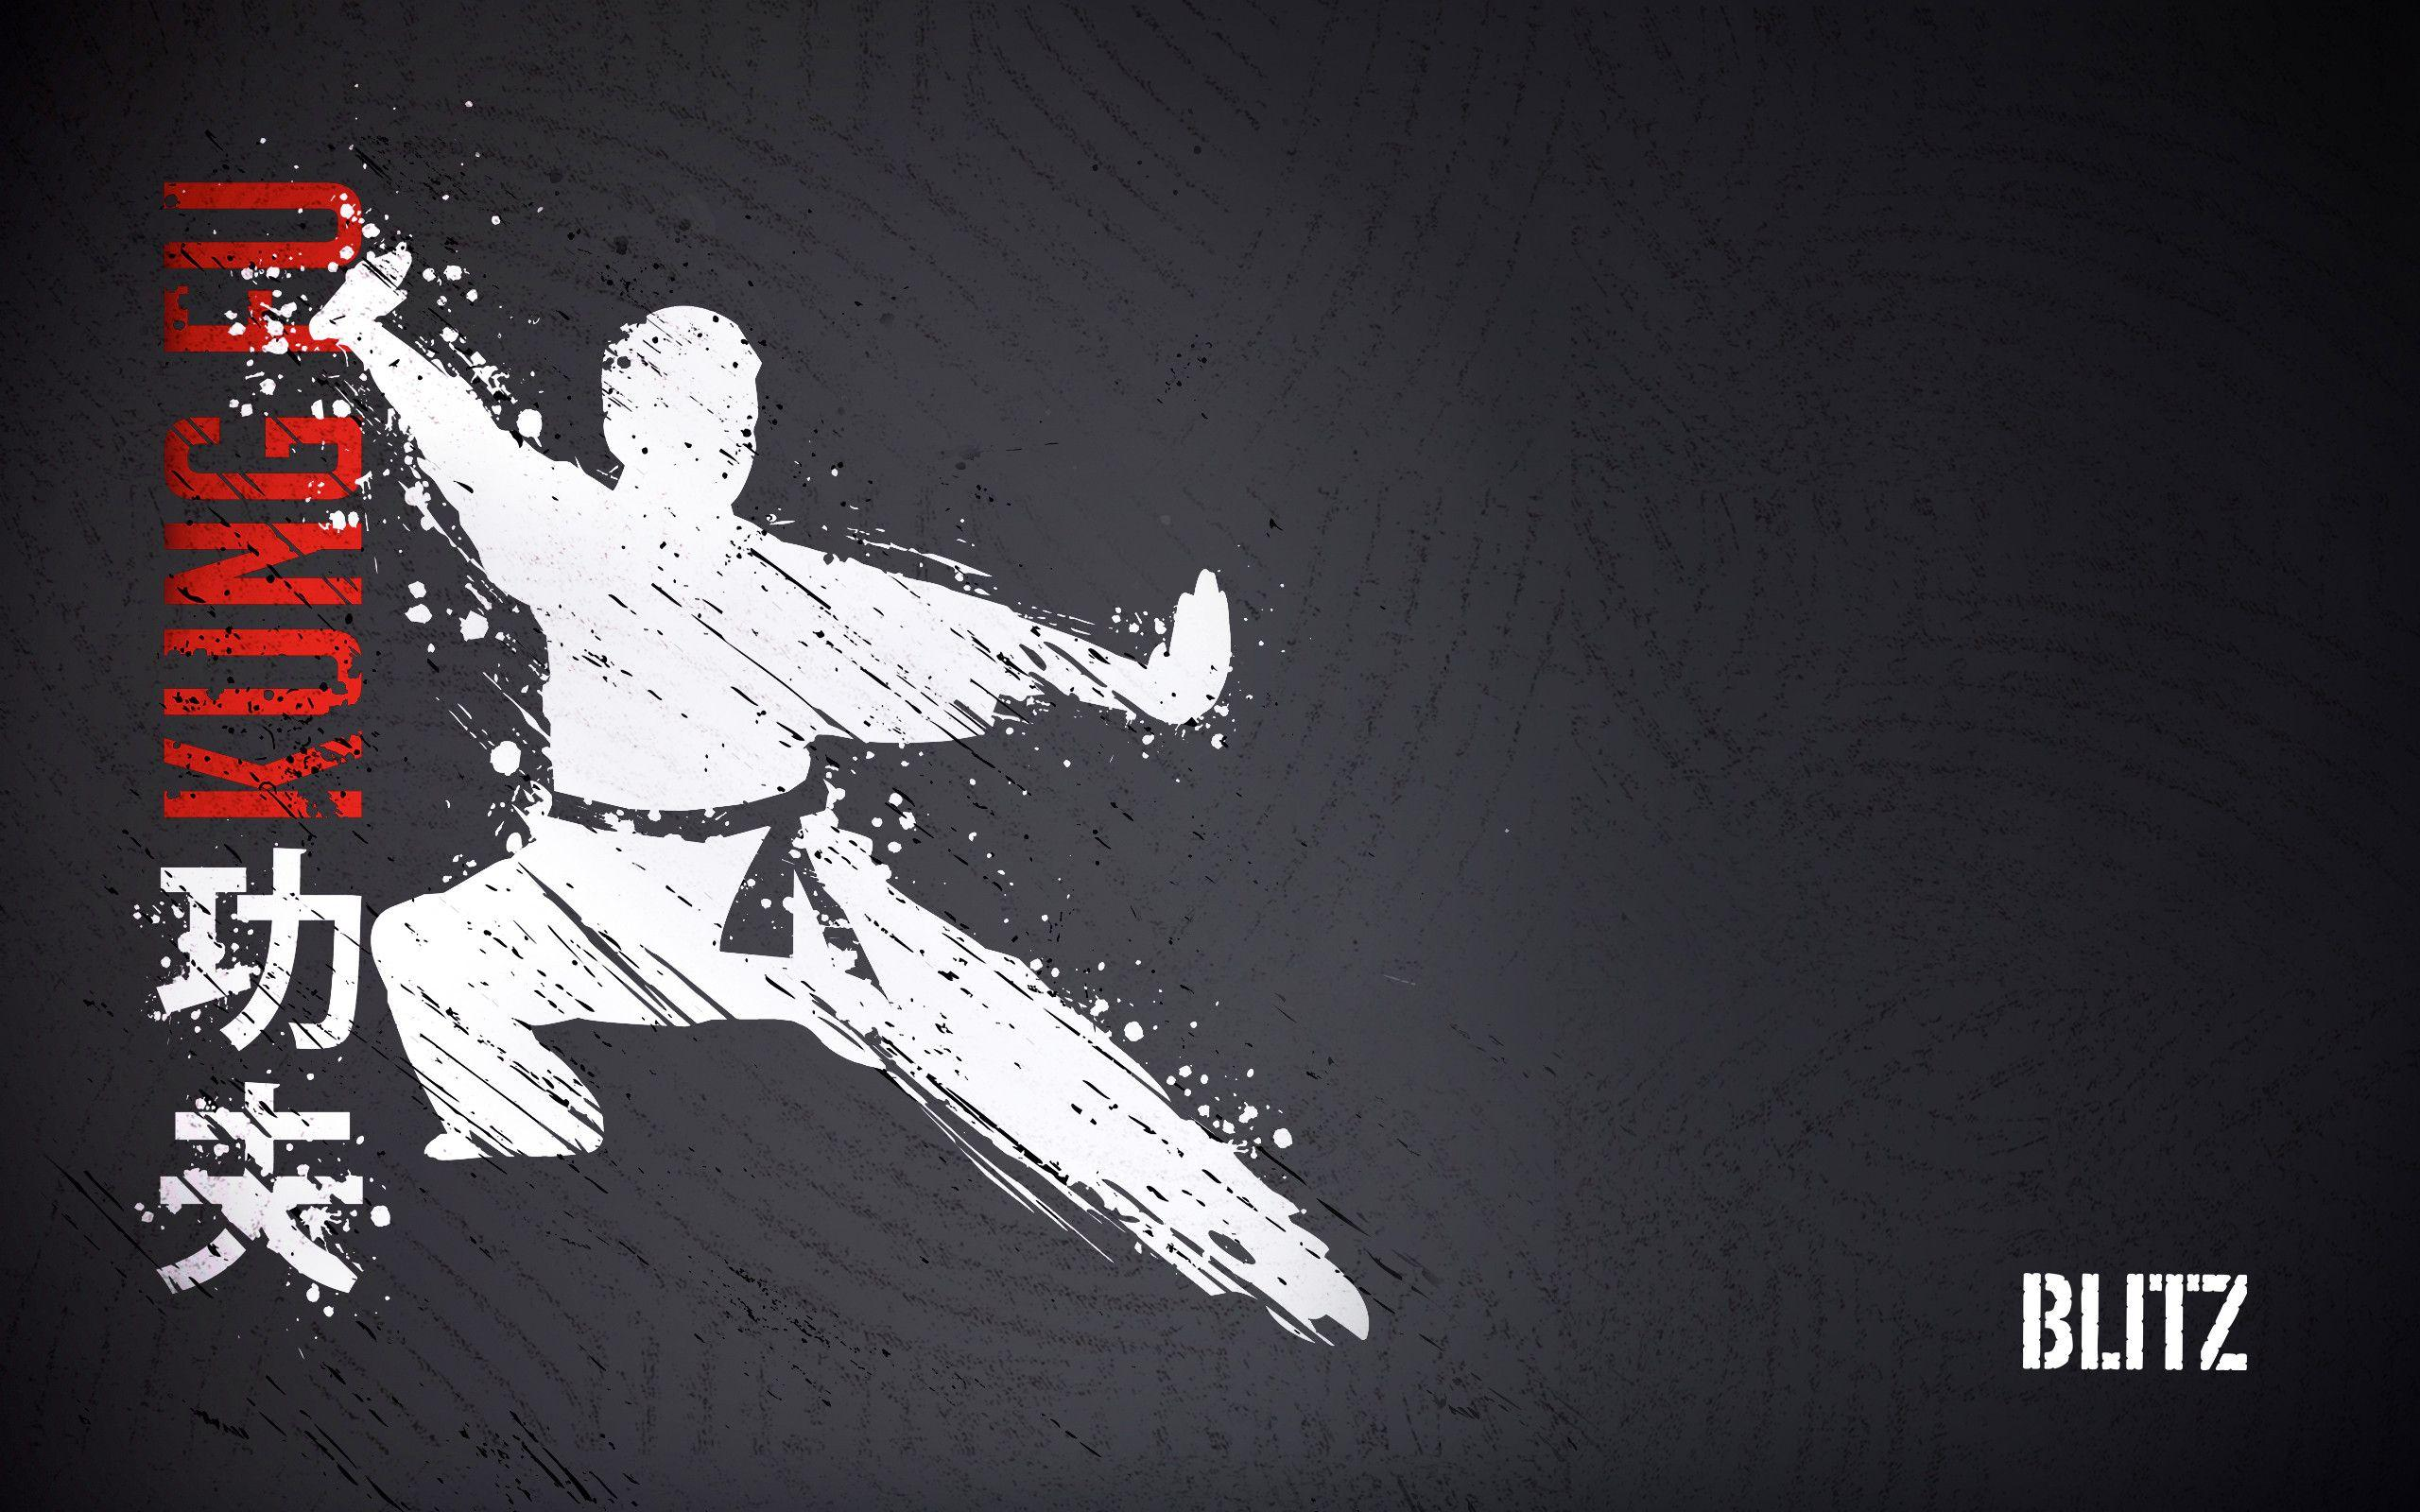 Jiu Jitsu Wallpapers Hd ✓ Labzada Wallpapers